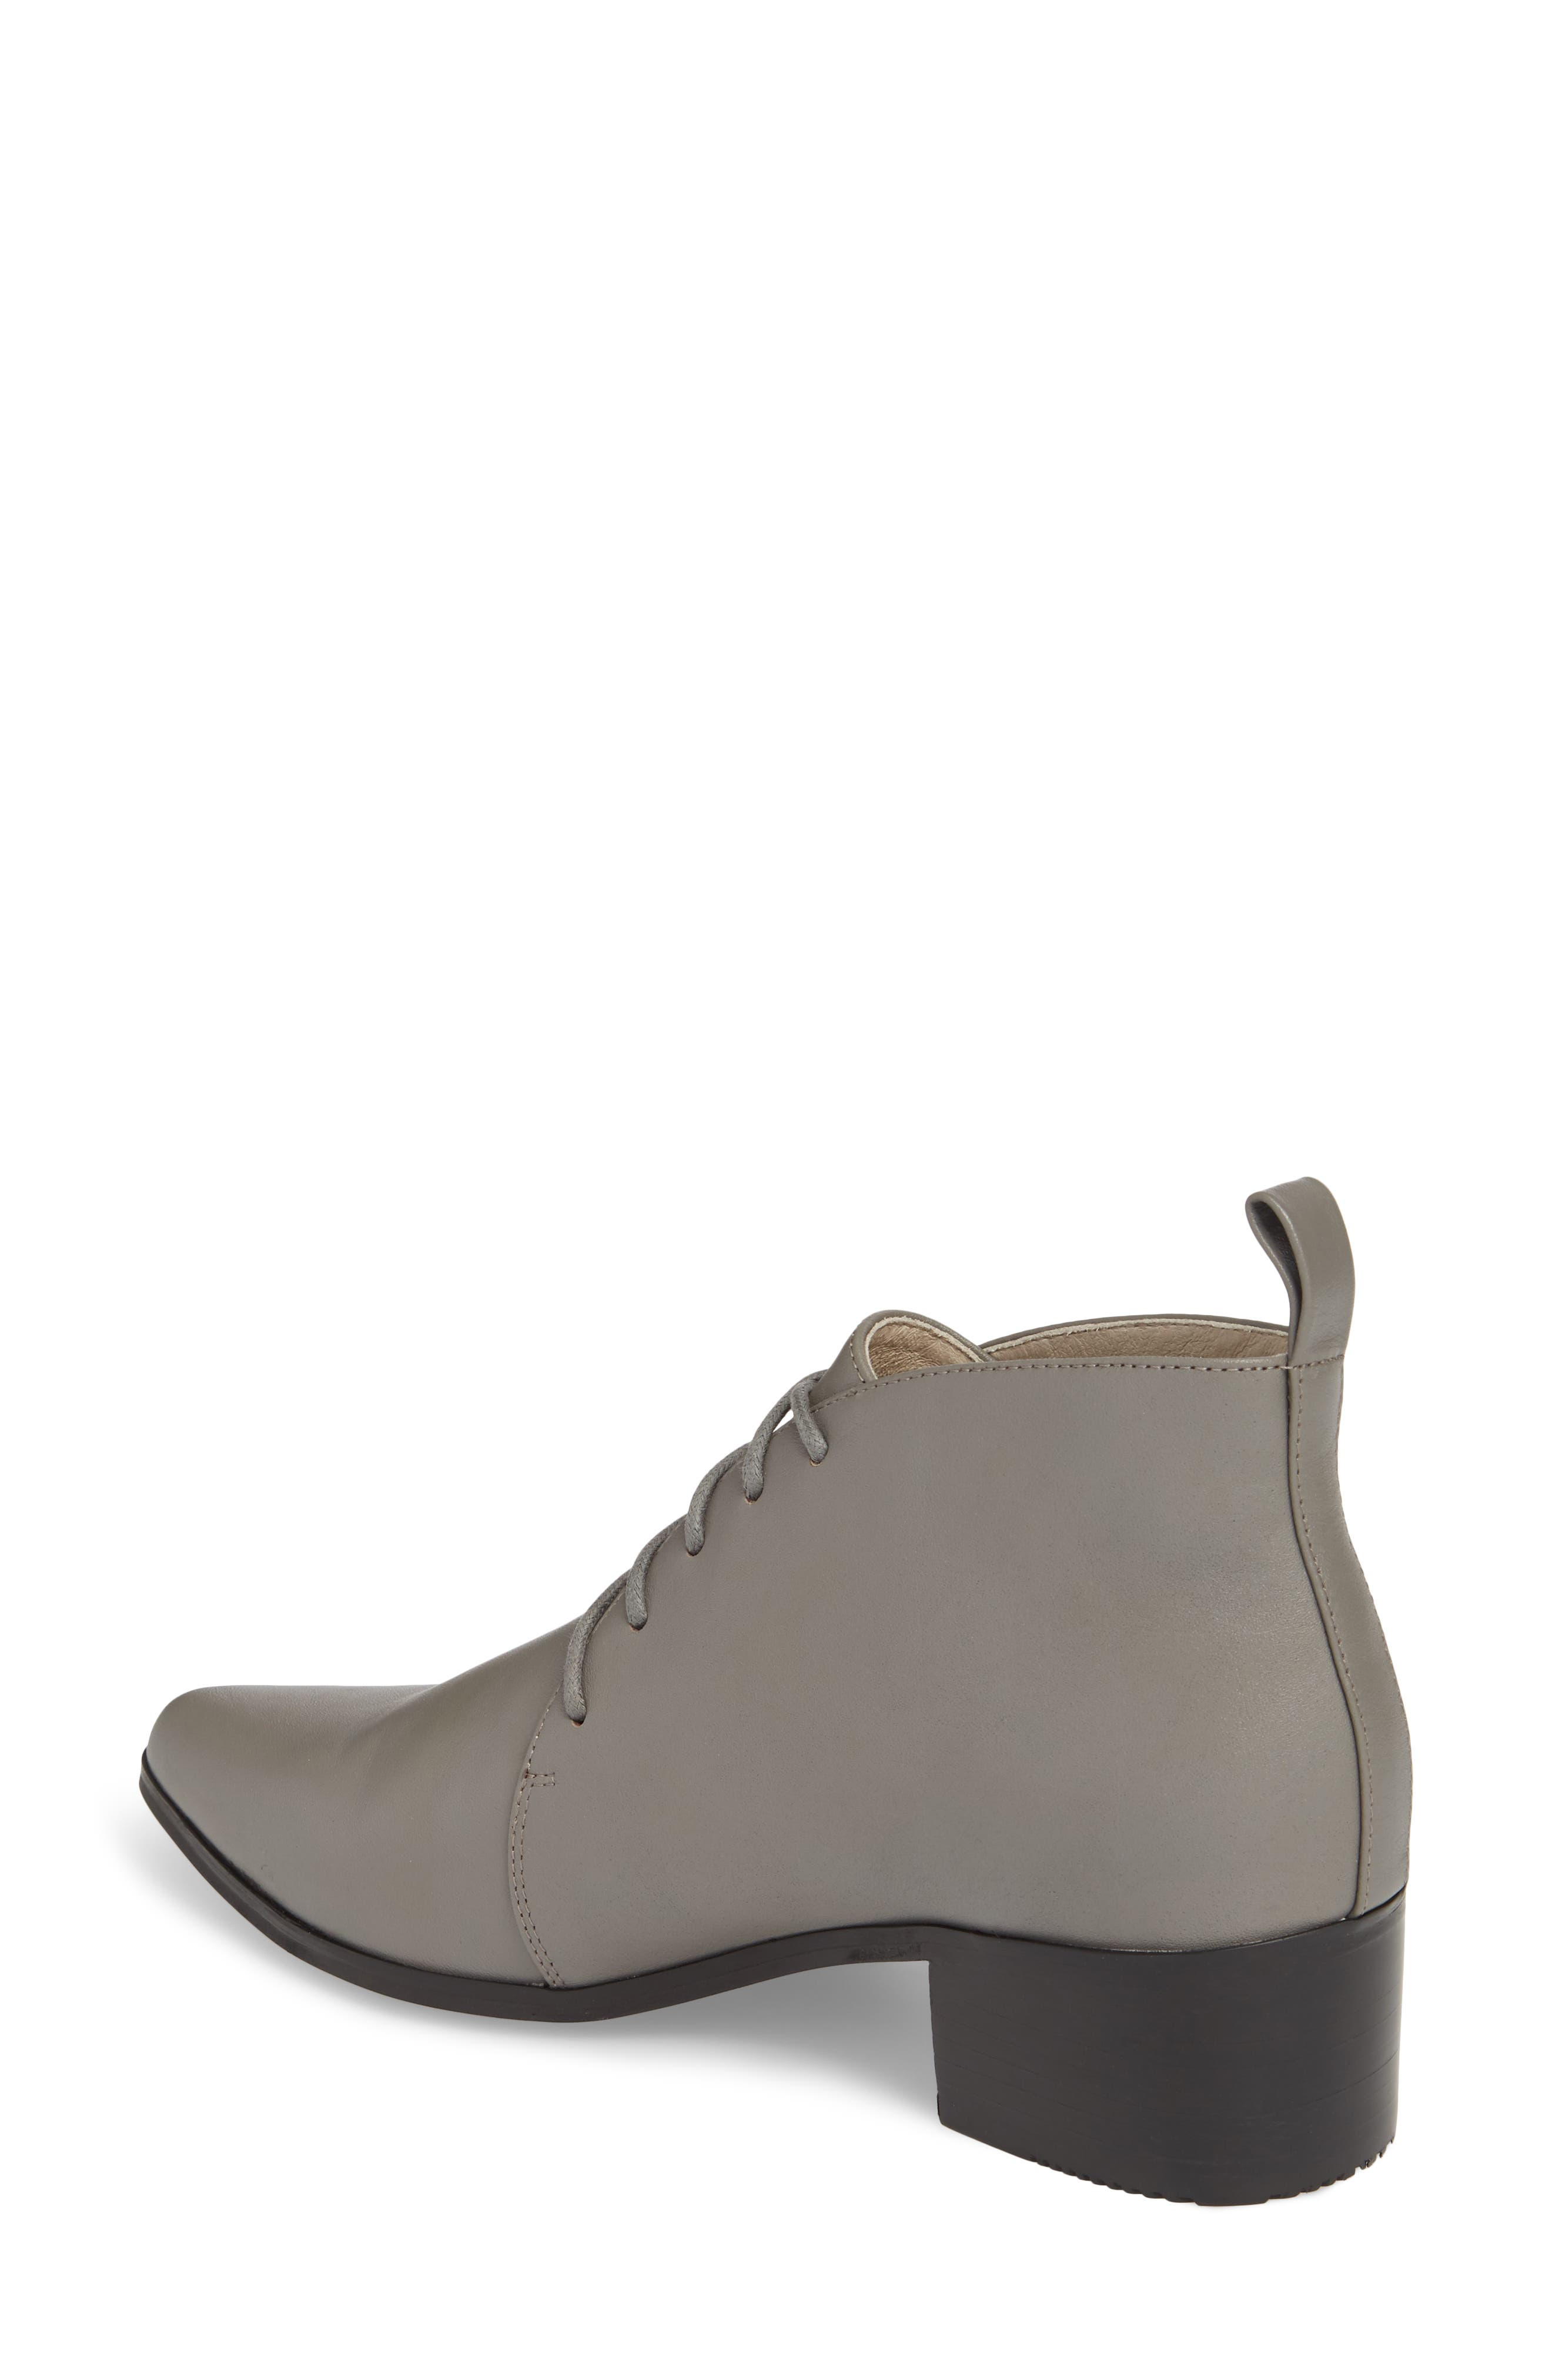 Waverly Lace-Up Bootie,                             Alternate thumbnail 2, color,                             035